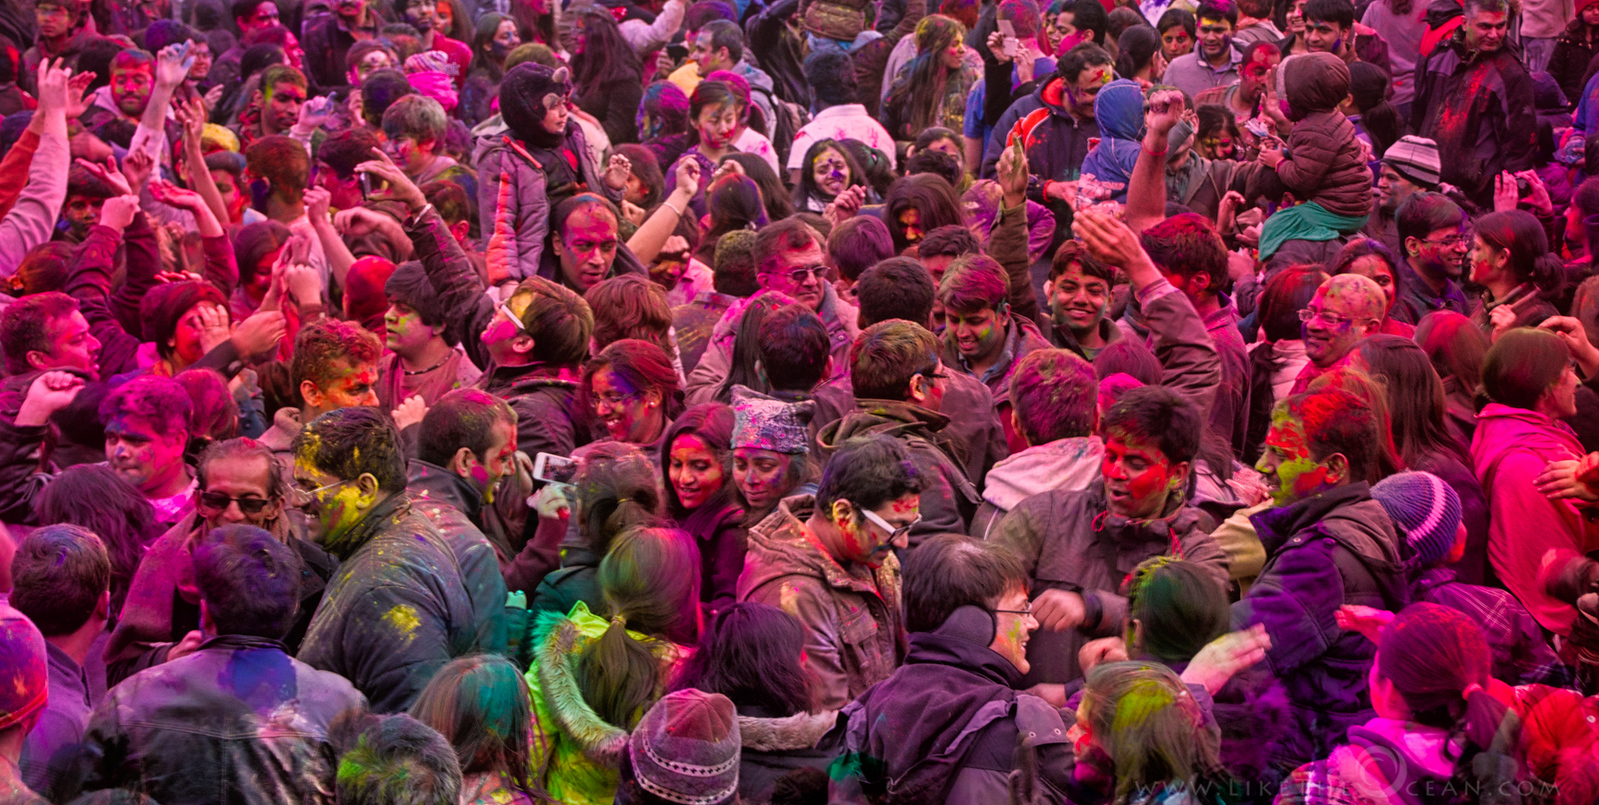 Essay On Personality Click Here For The Full Gallery What Is Exemplification Essay also Essay On Describing Yourself  Holi  Festival Of Colors  A Photo Essay  Like The Ocean Essay On My Dream Job